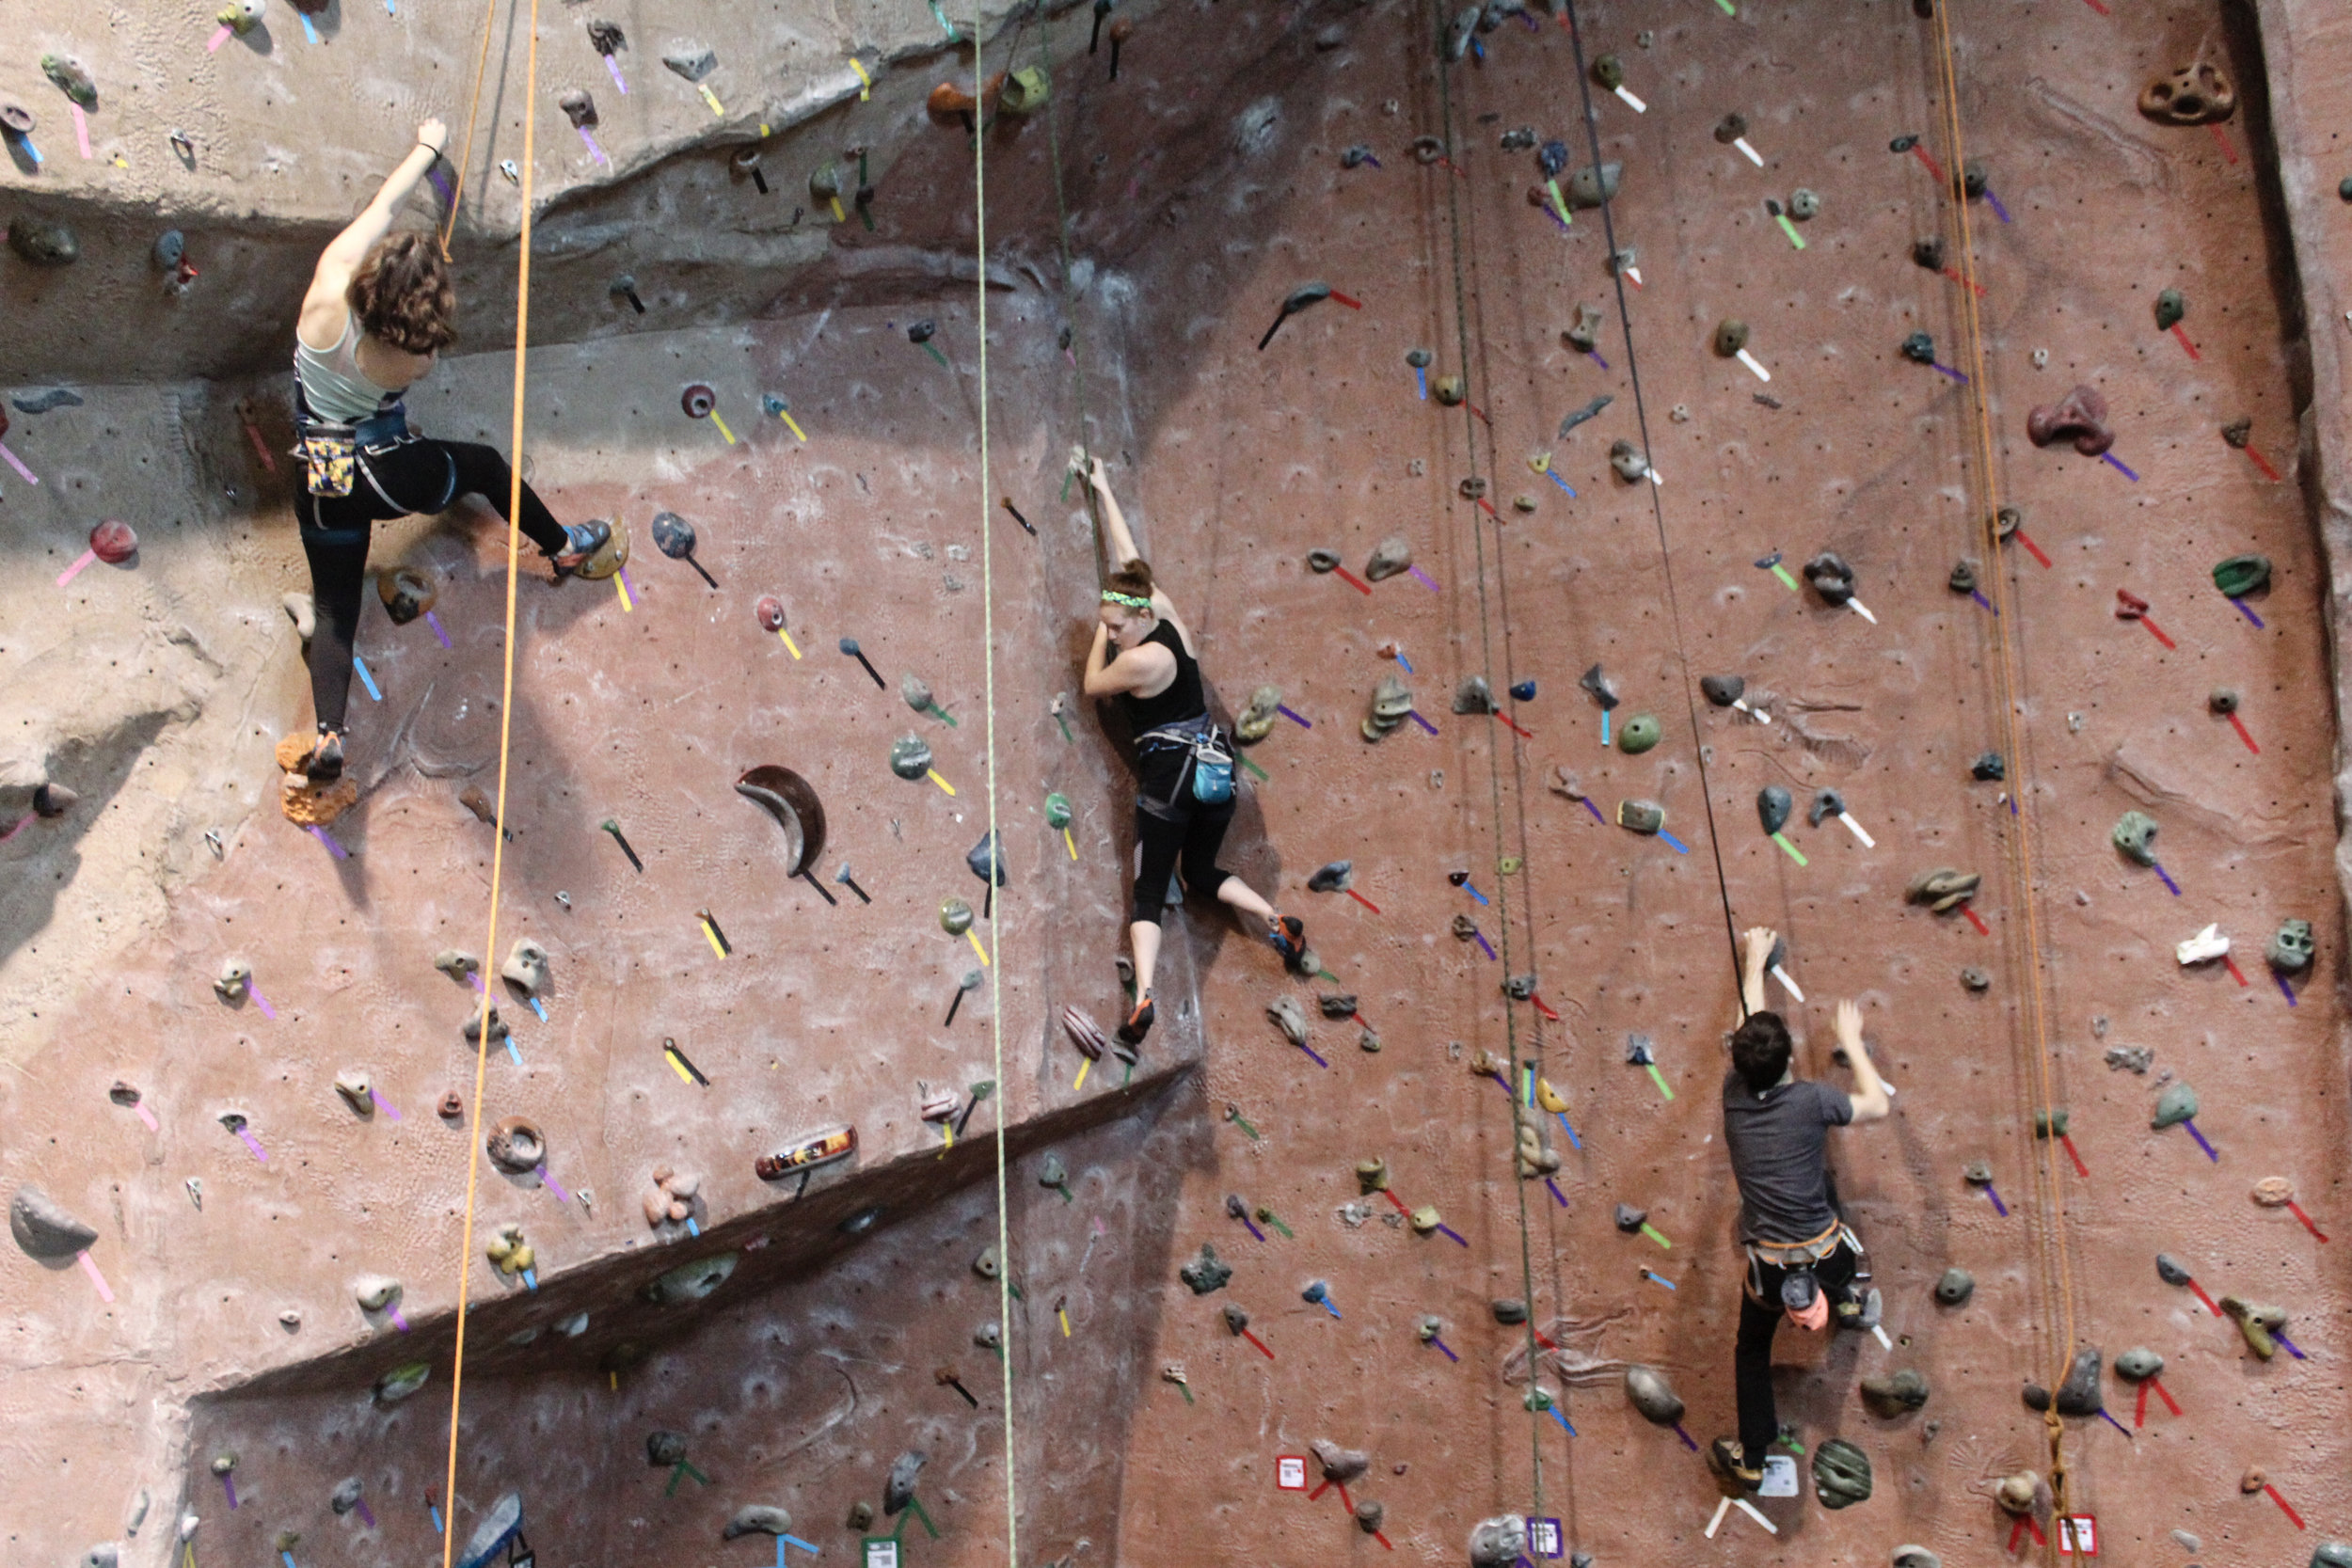 Celebrating 20 Years of Climbing   Since 1997 Climb On has been sharing and teaching the sport of rock climbing.   Learn More